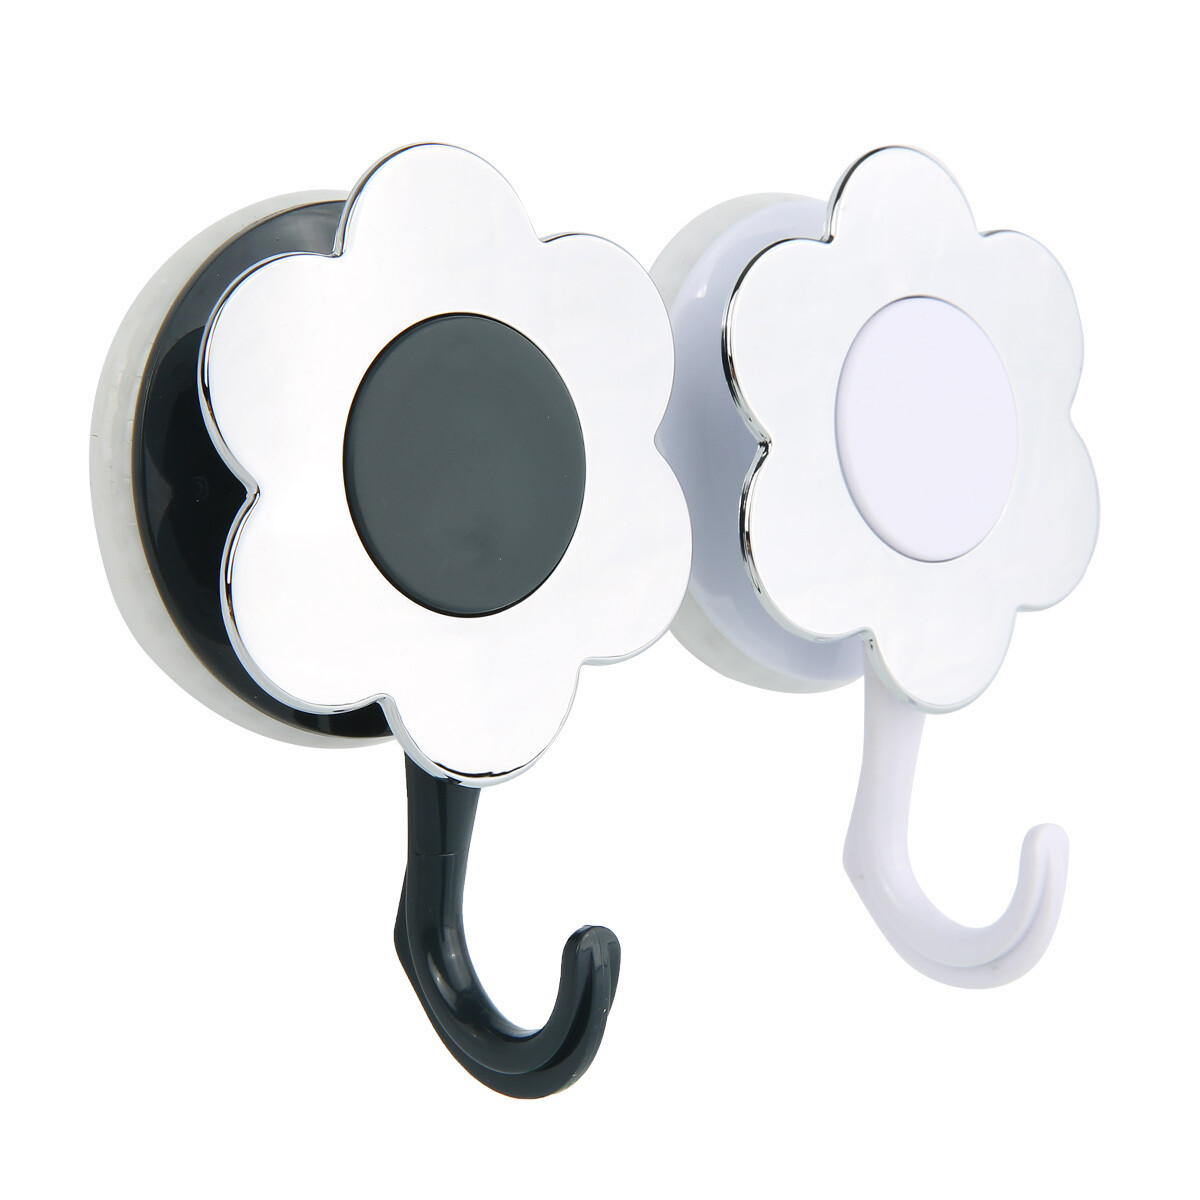 MYKE AW484 Suction Cup Flower Design Hook